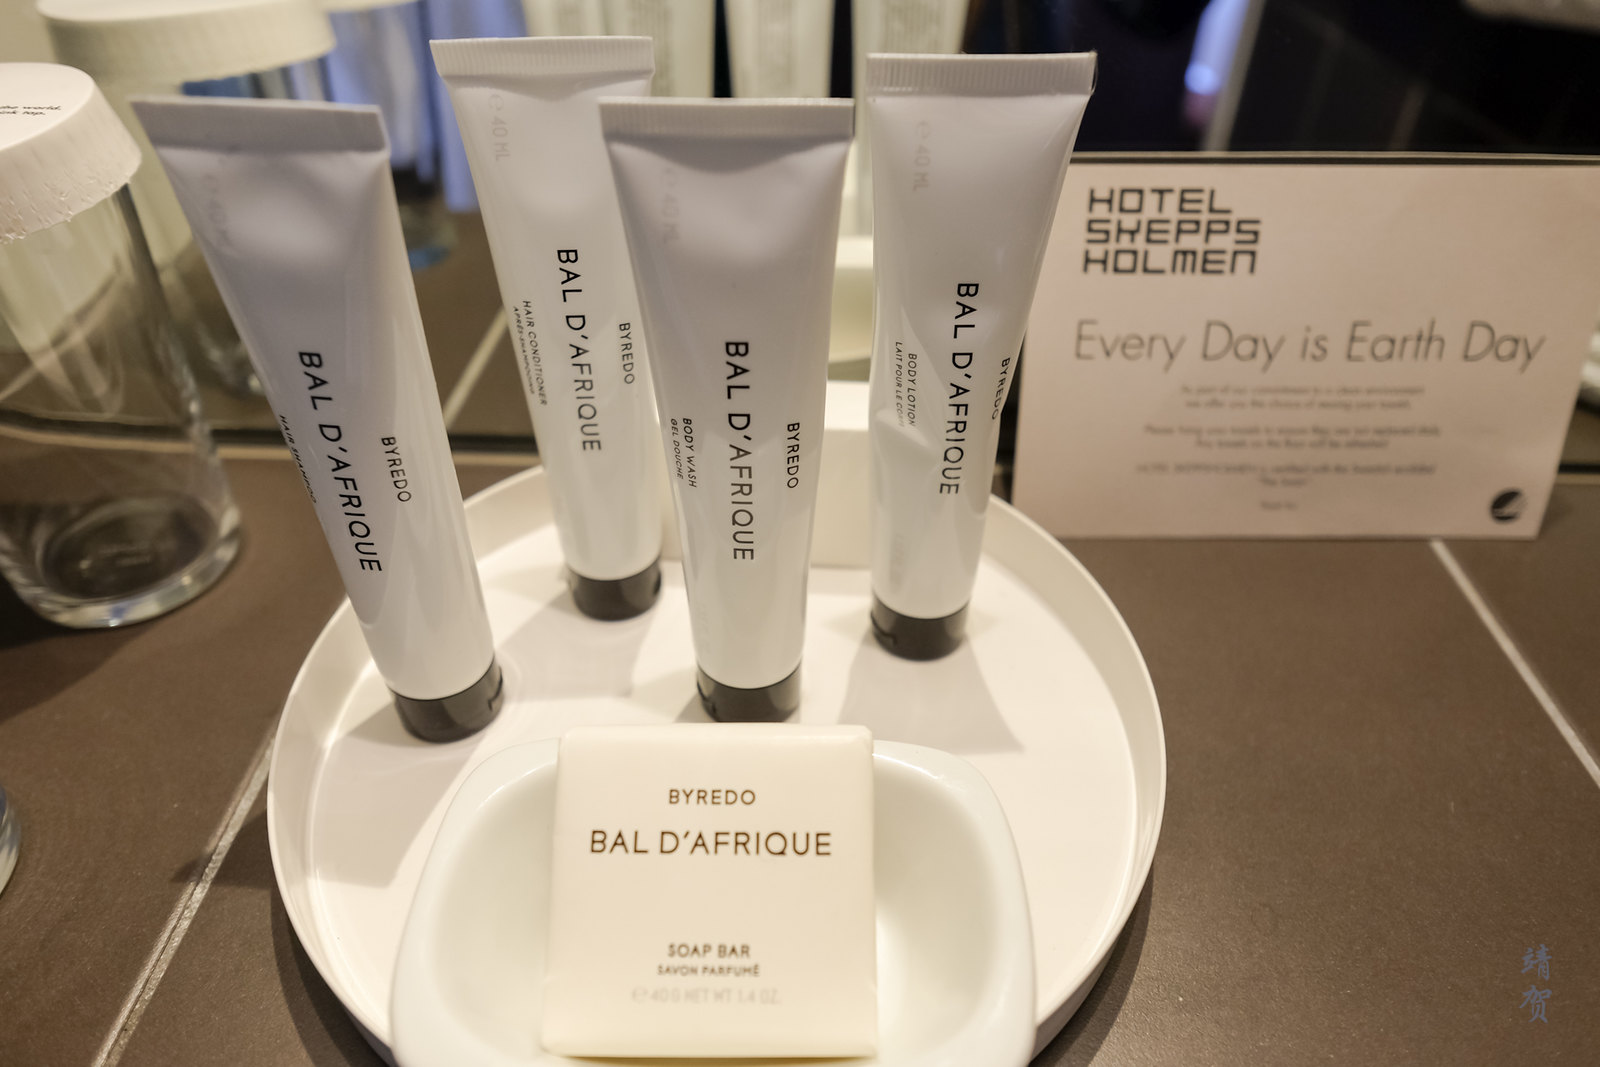 Byredo amenities